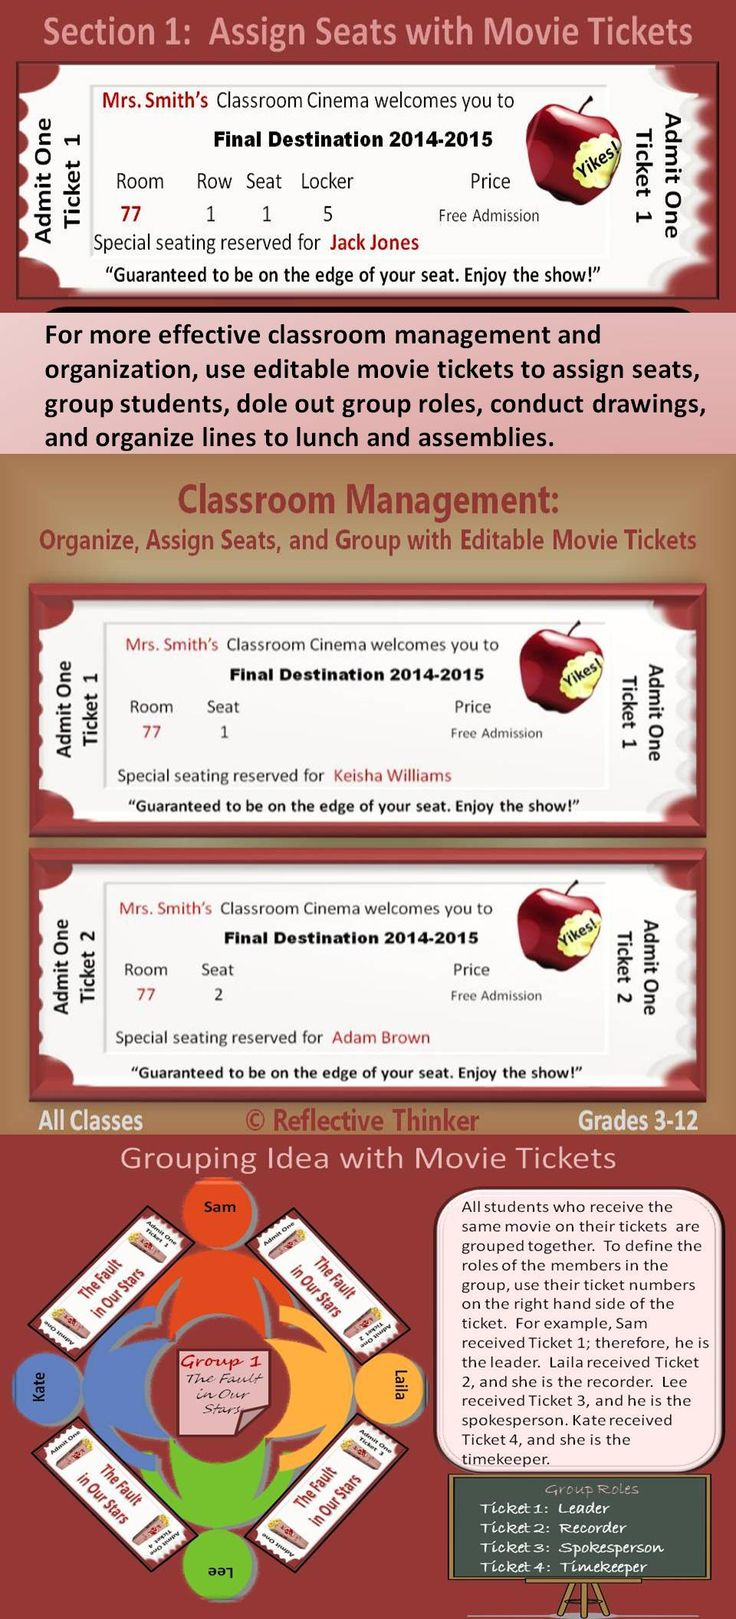 """The first week of back to school, do not find yourself on the """"Edge of Tomorrow."""" Use the 100 editable movie tickets and materials in this resource to organize and manage as well as add fun to mundane tasks such as assigning seats, formulating lines, and grouping students."""